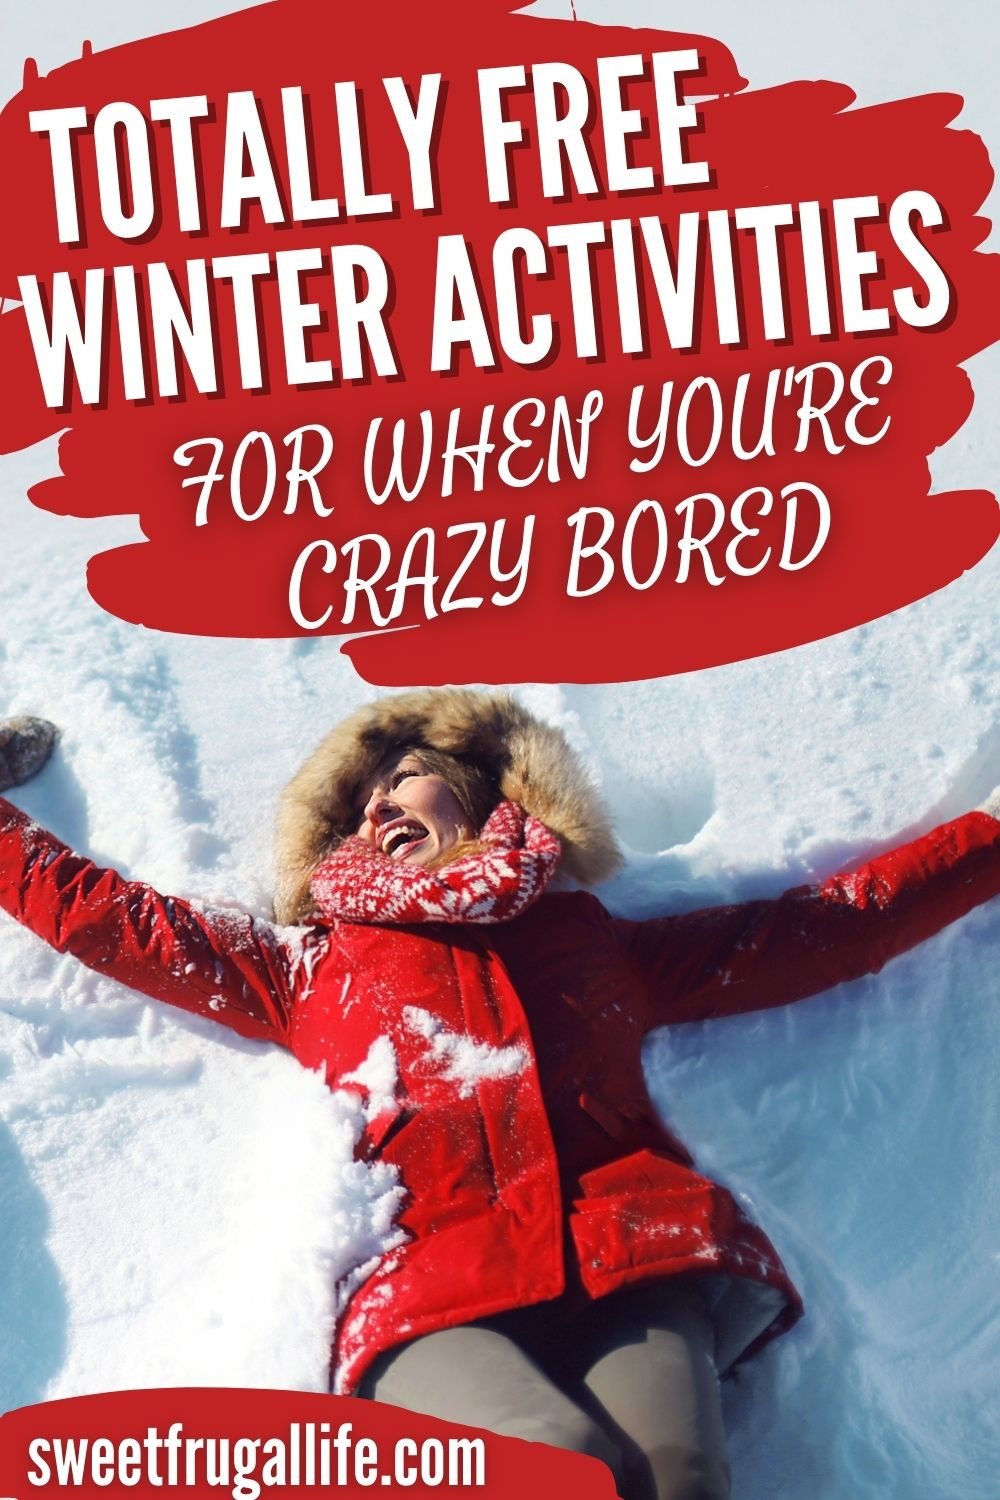 free winter activities - fun ideas for kids during winter